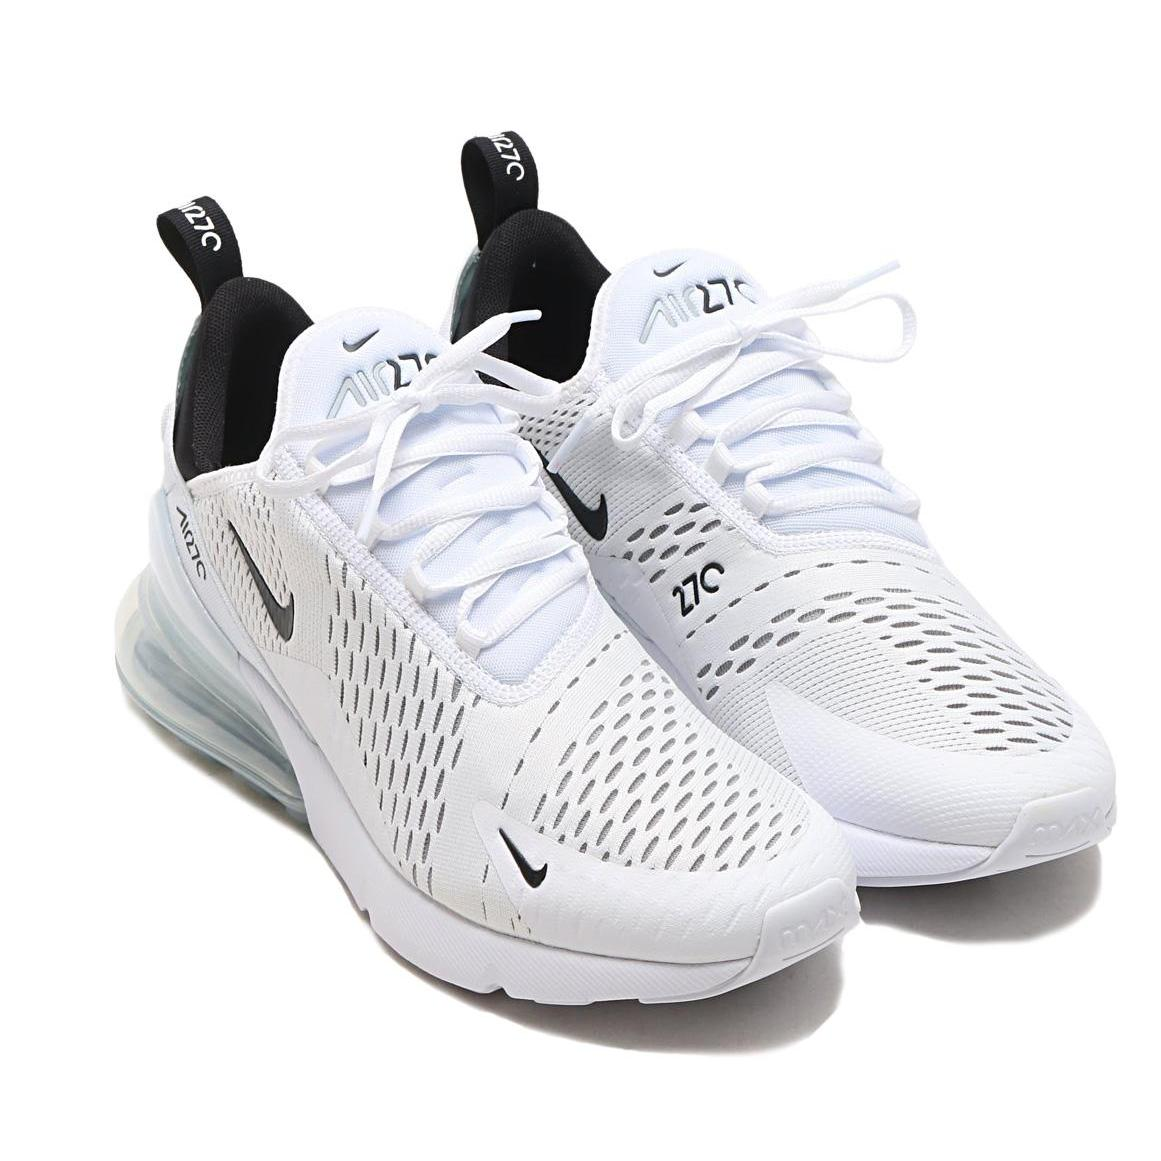 Nike Air Max 270 Flyknit Shoes Running Shoes for Men and women's (WhiteBlack36 45)*JM